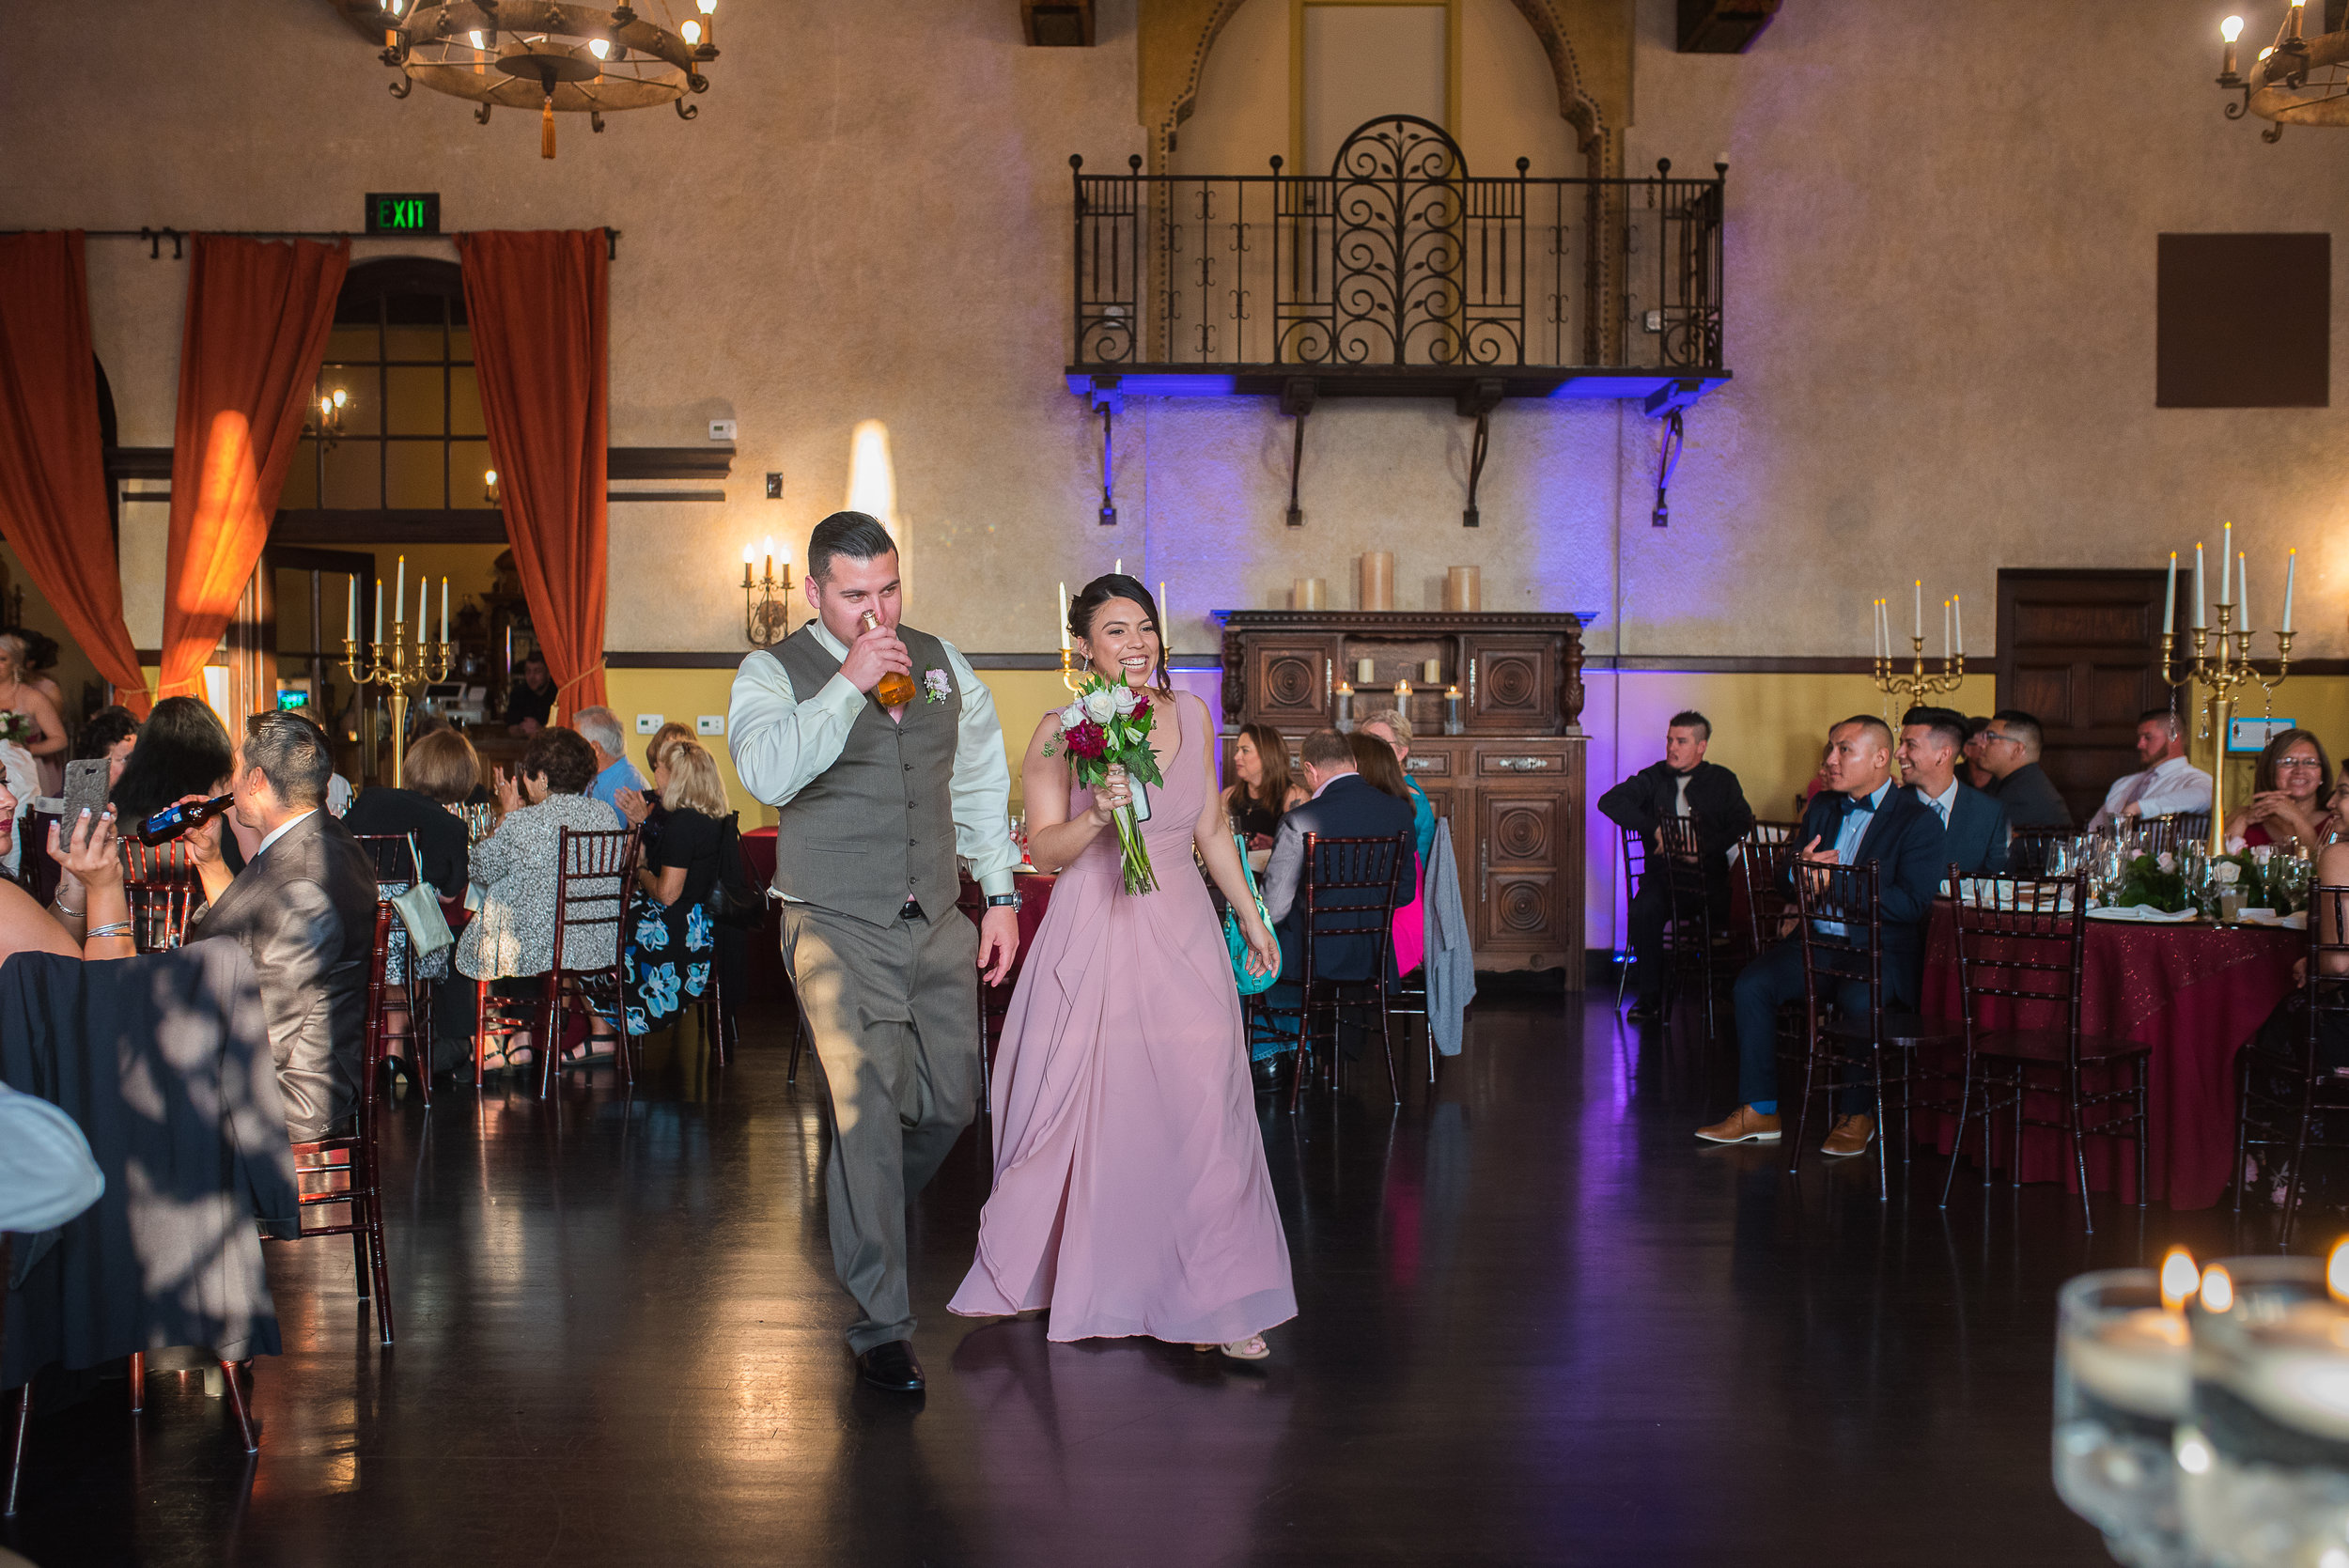 loft-84-riverside-maura-wedding-reception-14.jpg